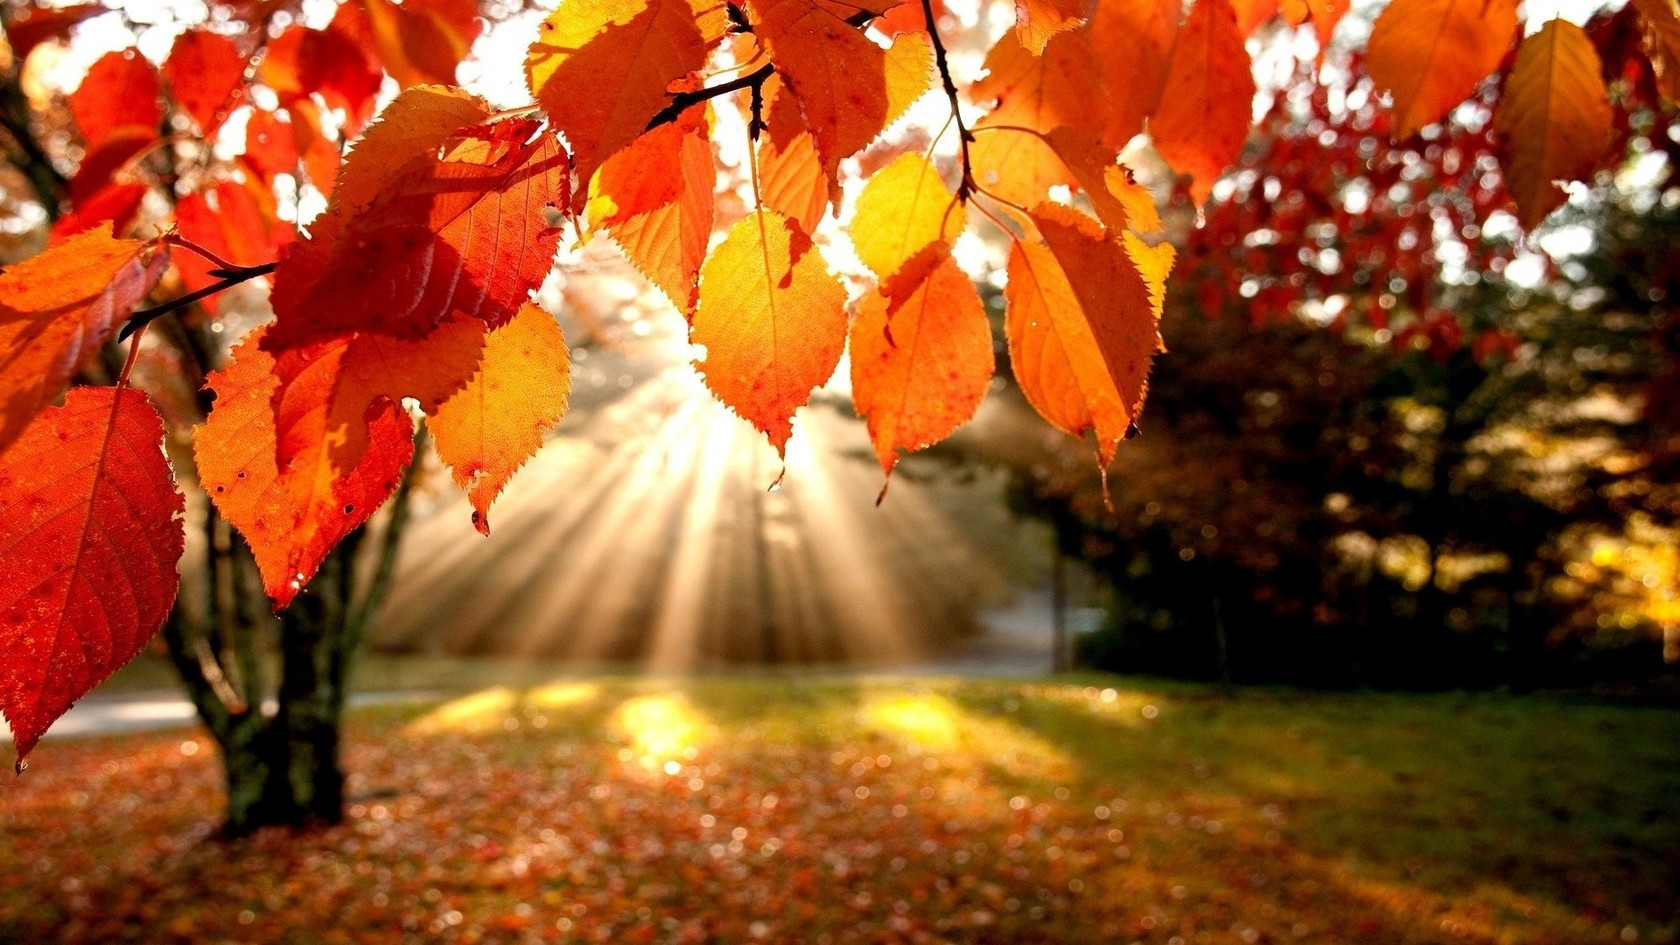 2016 First Day of Fall Quotes - 20 Best Autumn Sayings & Leaf Quotes